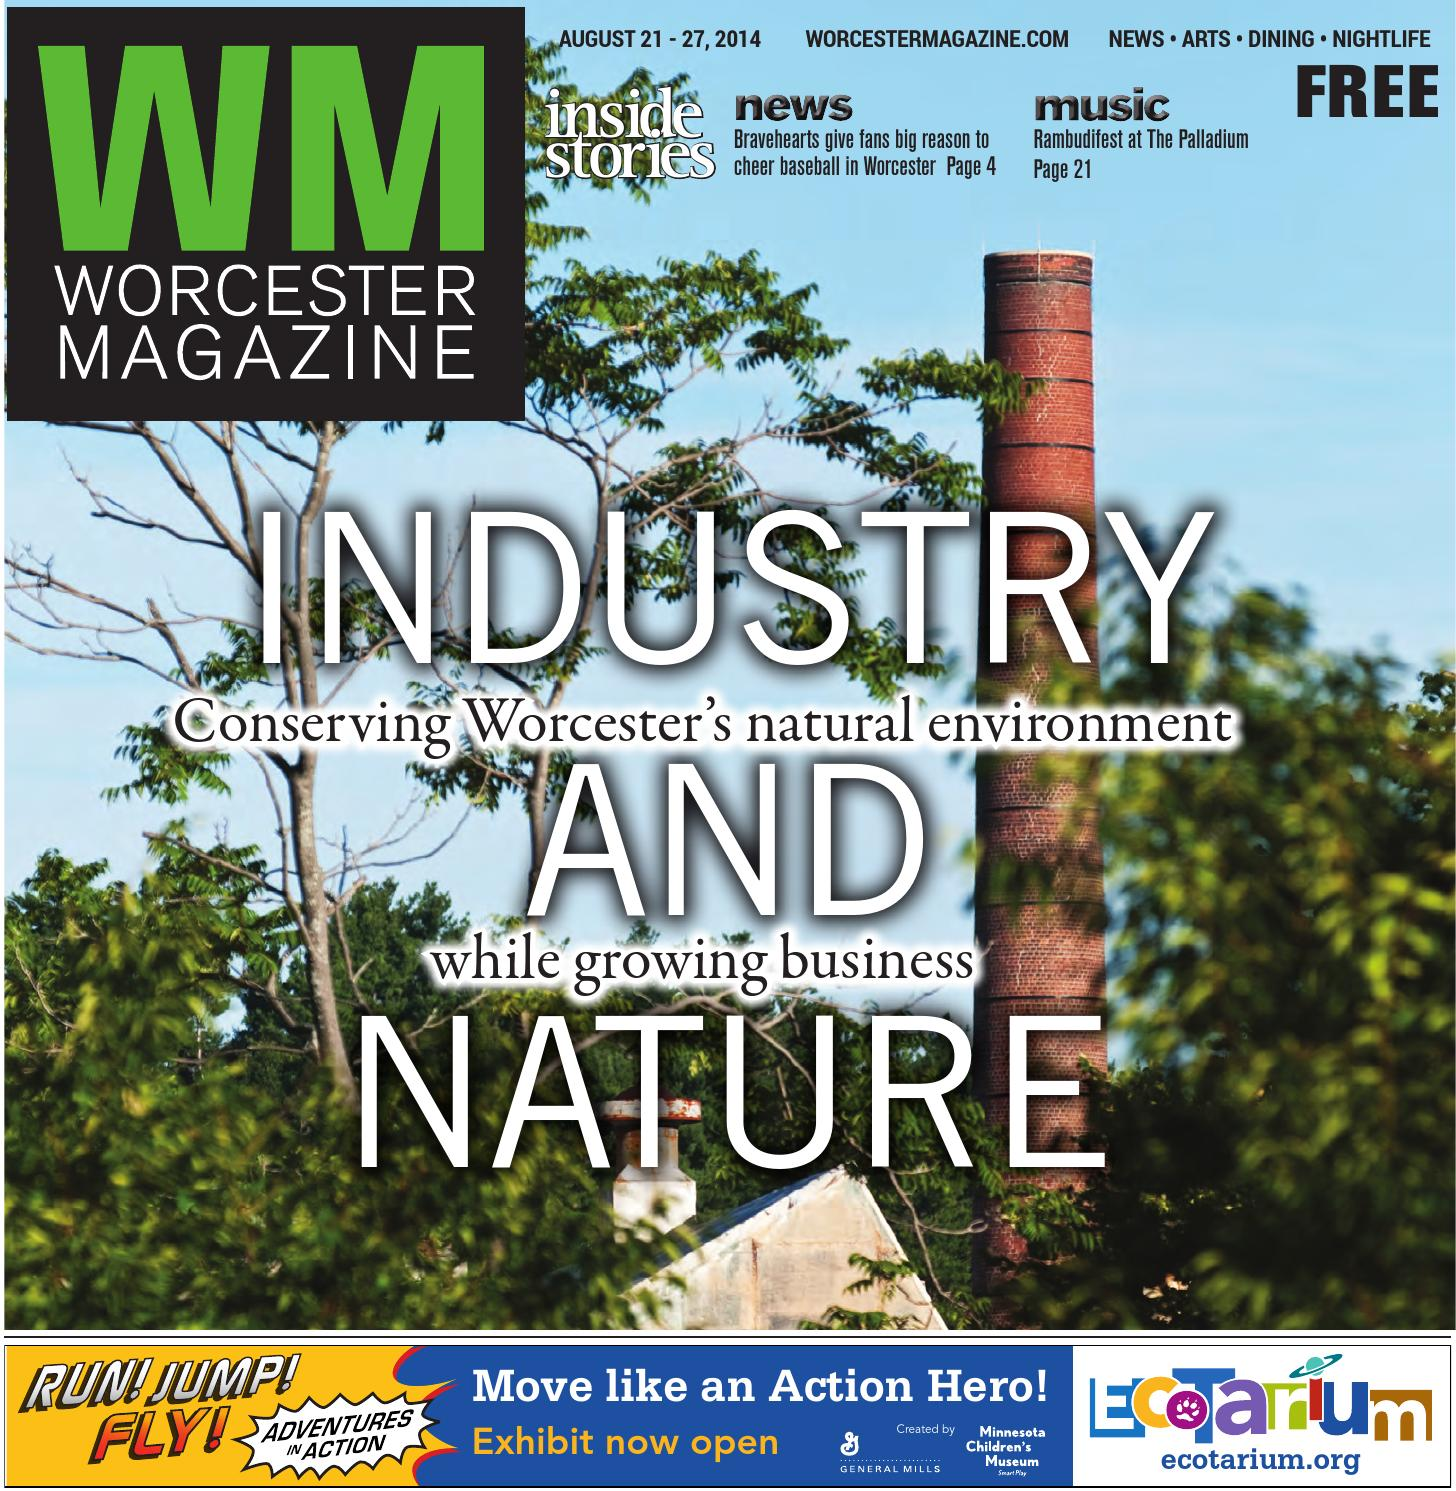 Nr 7272 Regal Rack Industrial Vintage Loft Industrie Ebay Mid Worcester Magazine Aug 21 2014 By Worcester Magazine Issuu